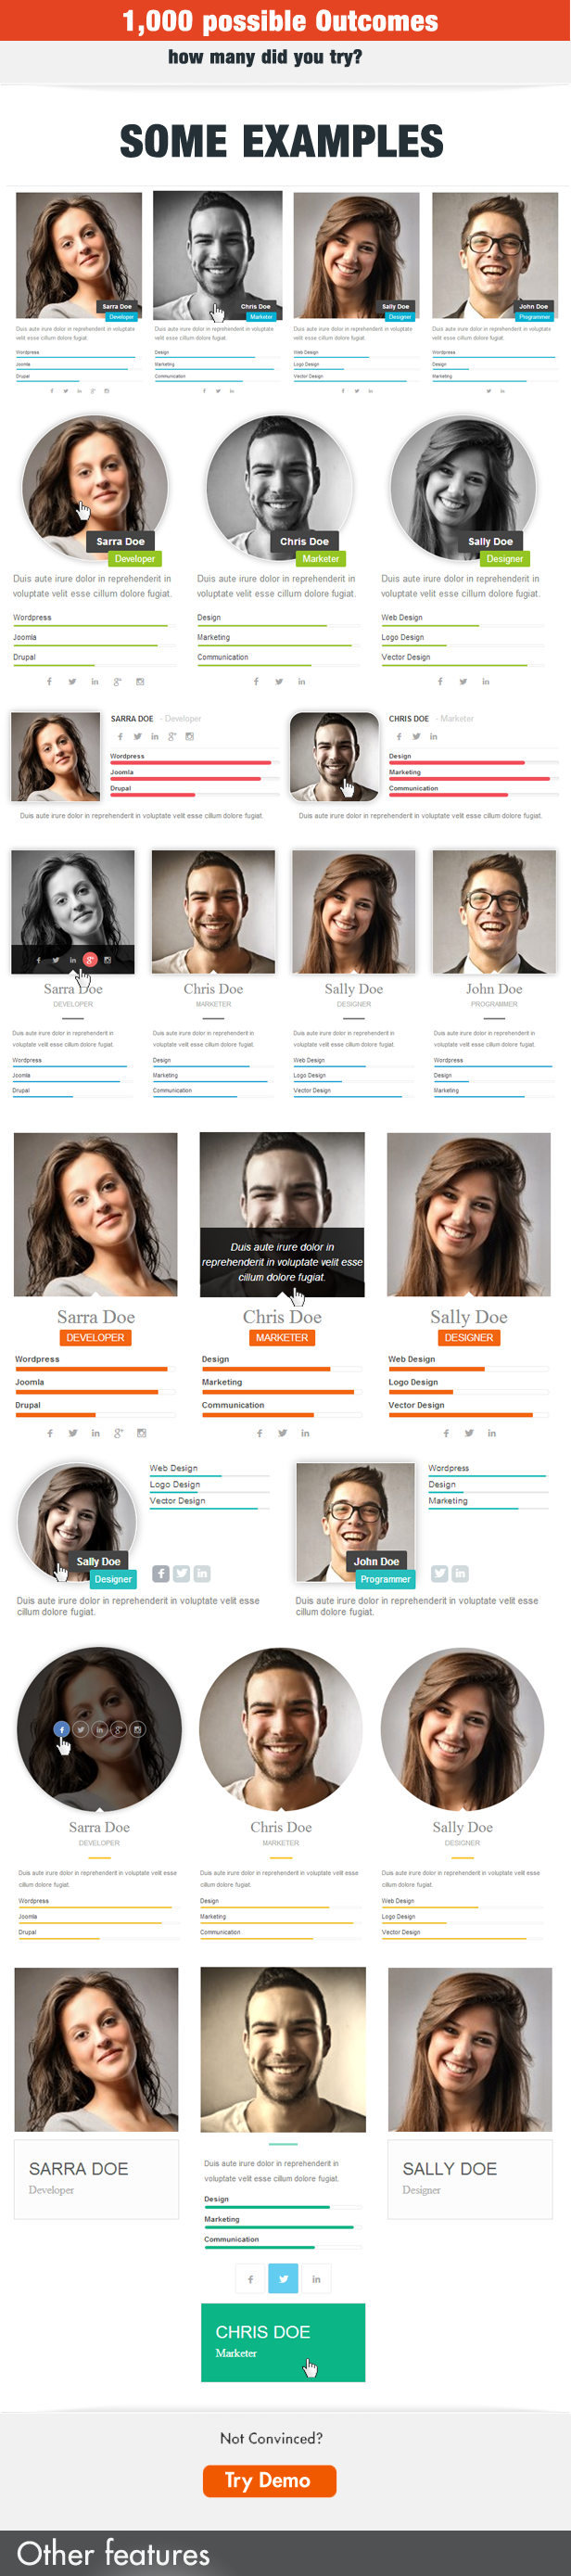 My Team Showcase WordPress Plugin - 4